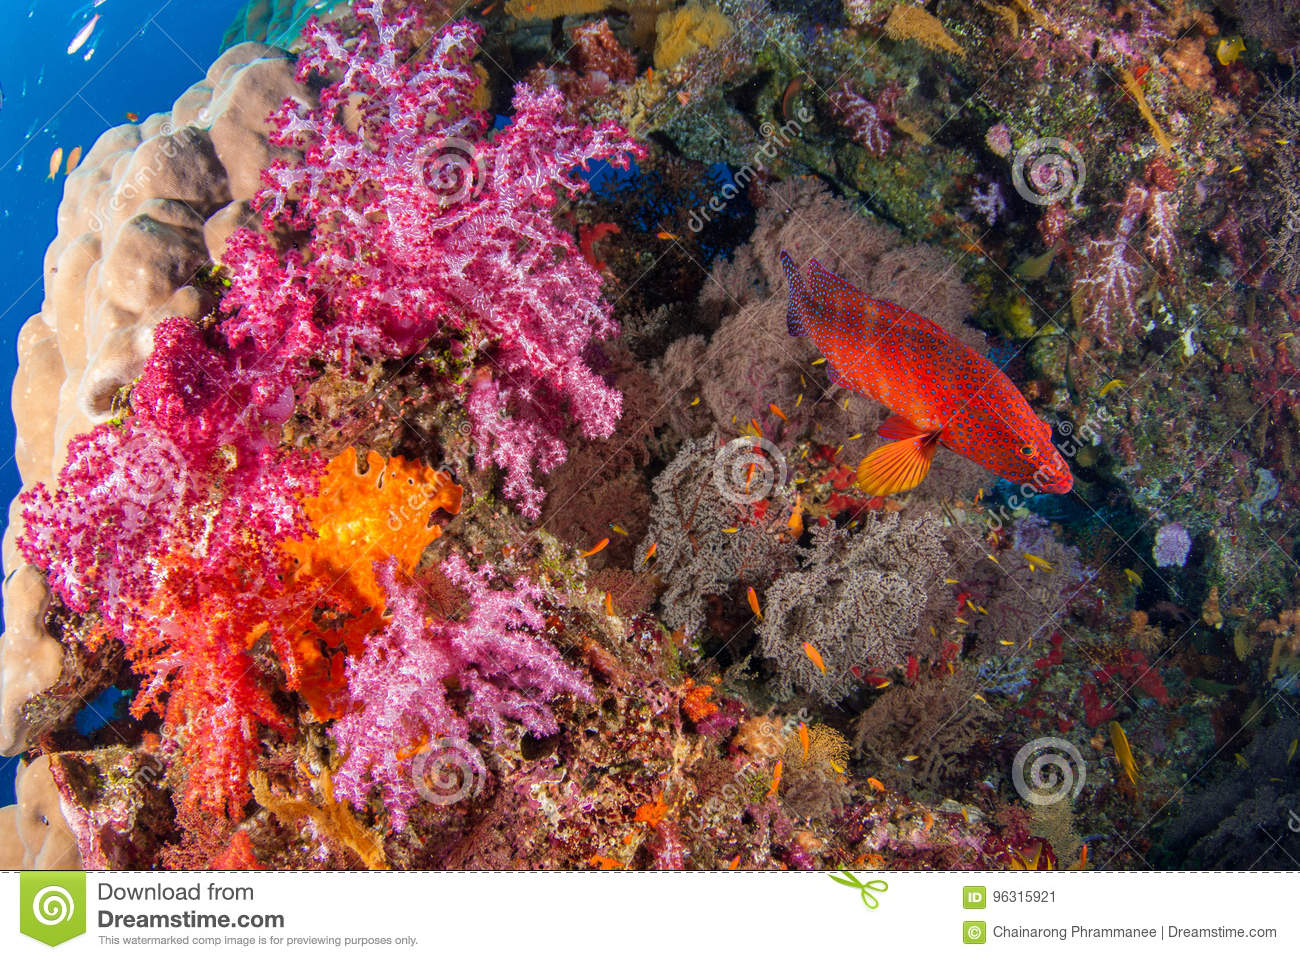 Under The Sea Colorful Fish Coral Reefs. Stock Image - Image of ...